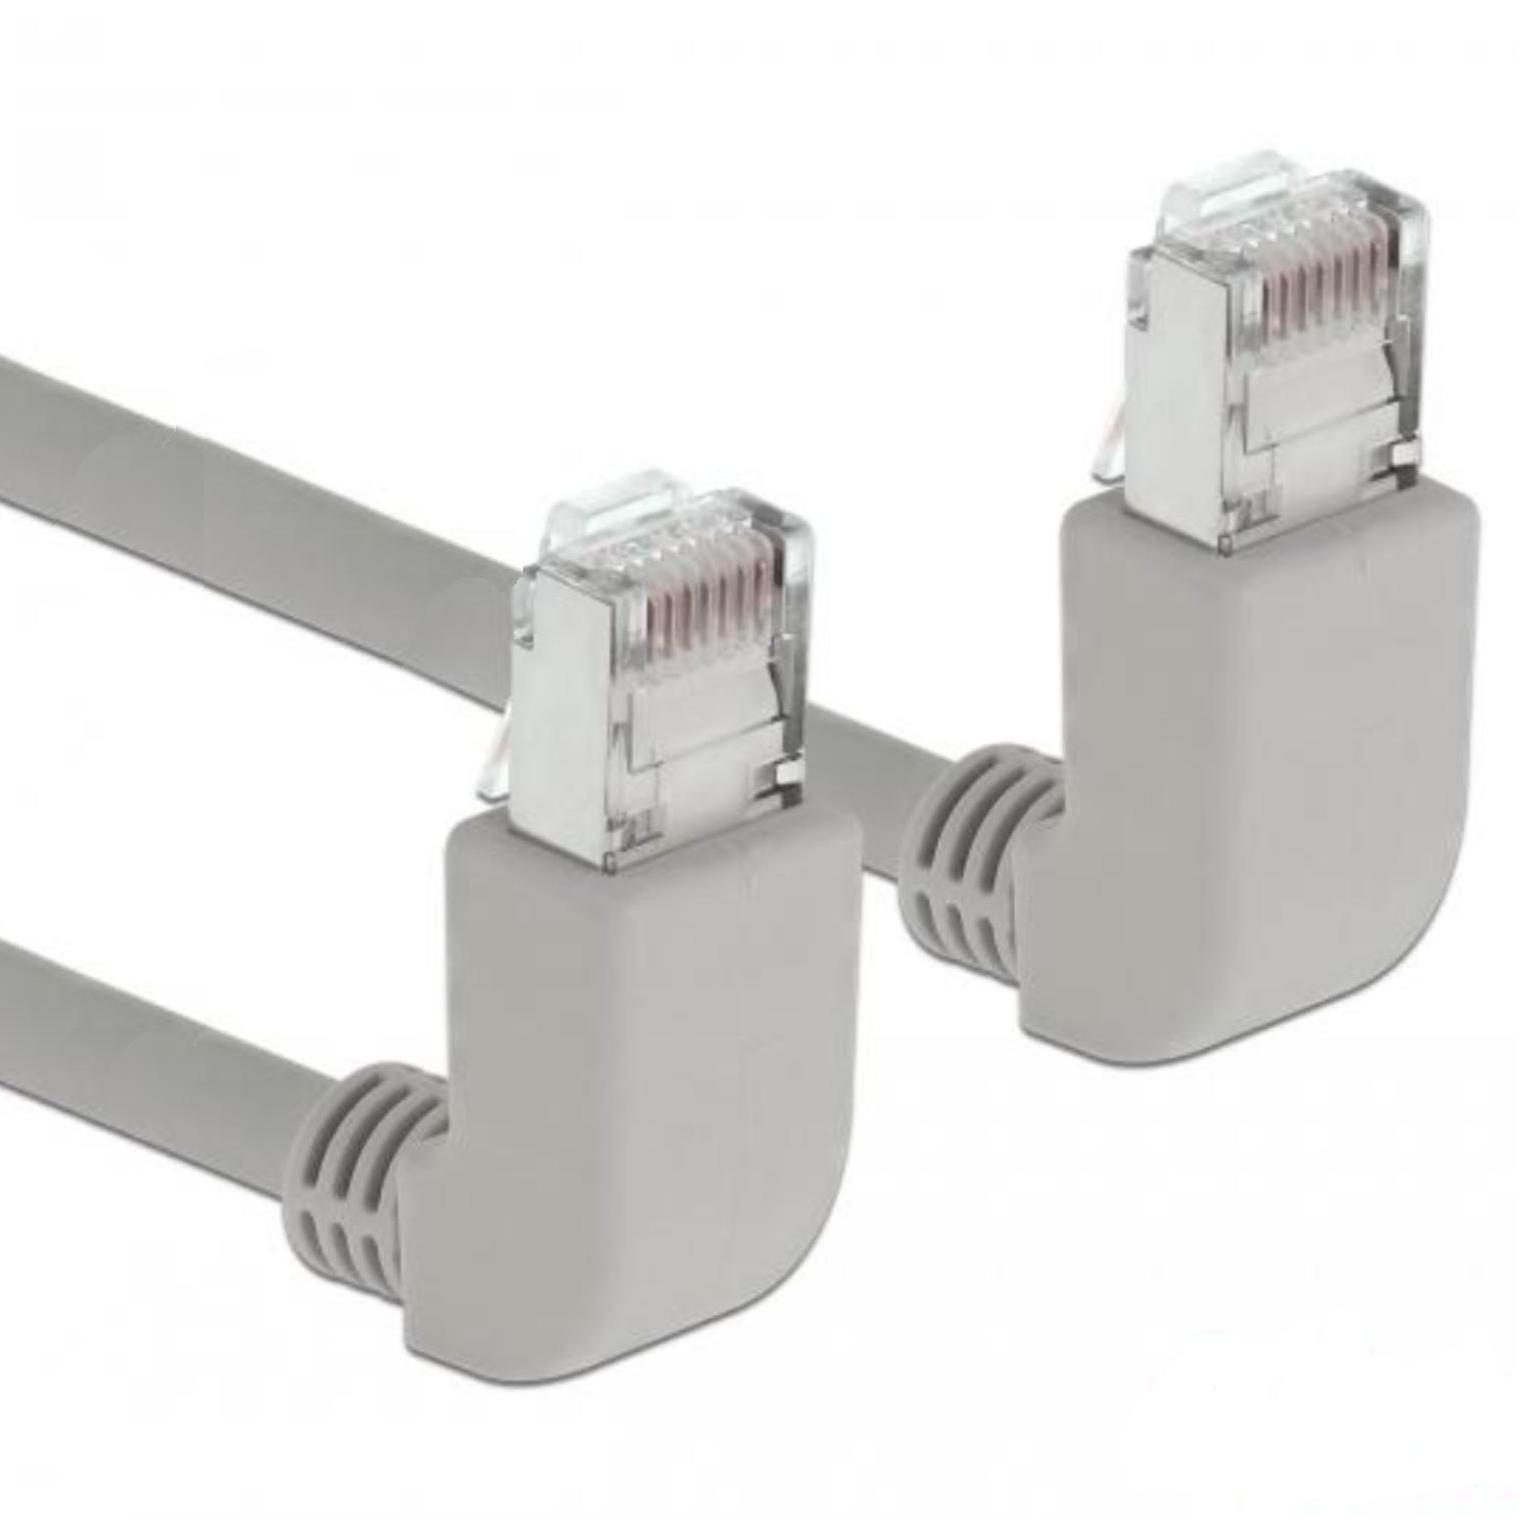 Delock Cable RJ45 Cat.6 SSTP angled / angled 0.5 m This network cable by Delock is used to connect different network devices, such as a patch panel to a switch. The angled plug enables a space- saving installation in tight spaces behind appliances or in network closets